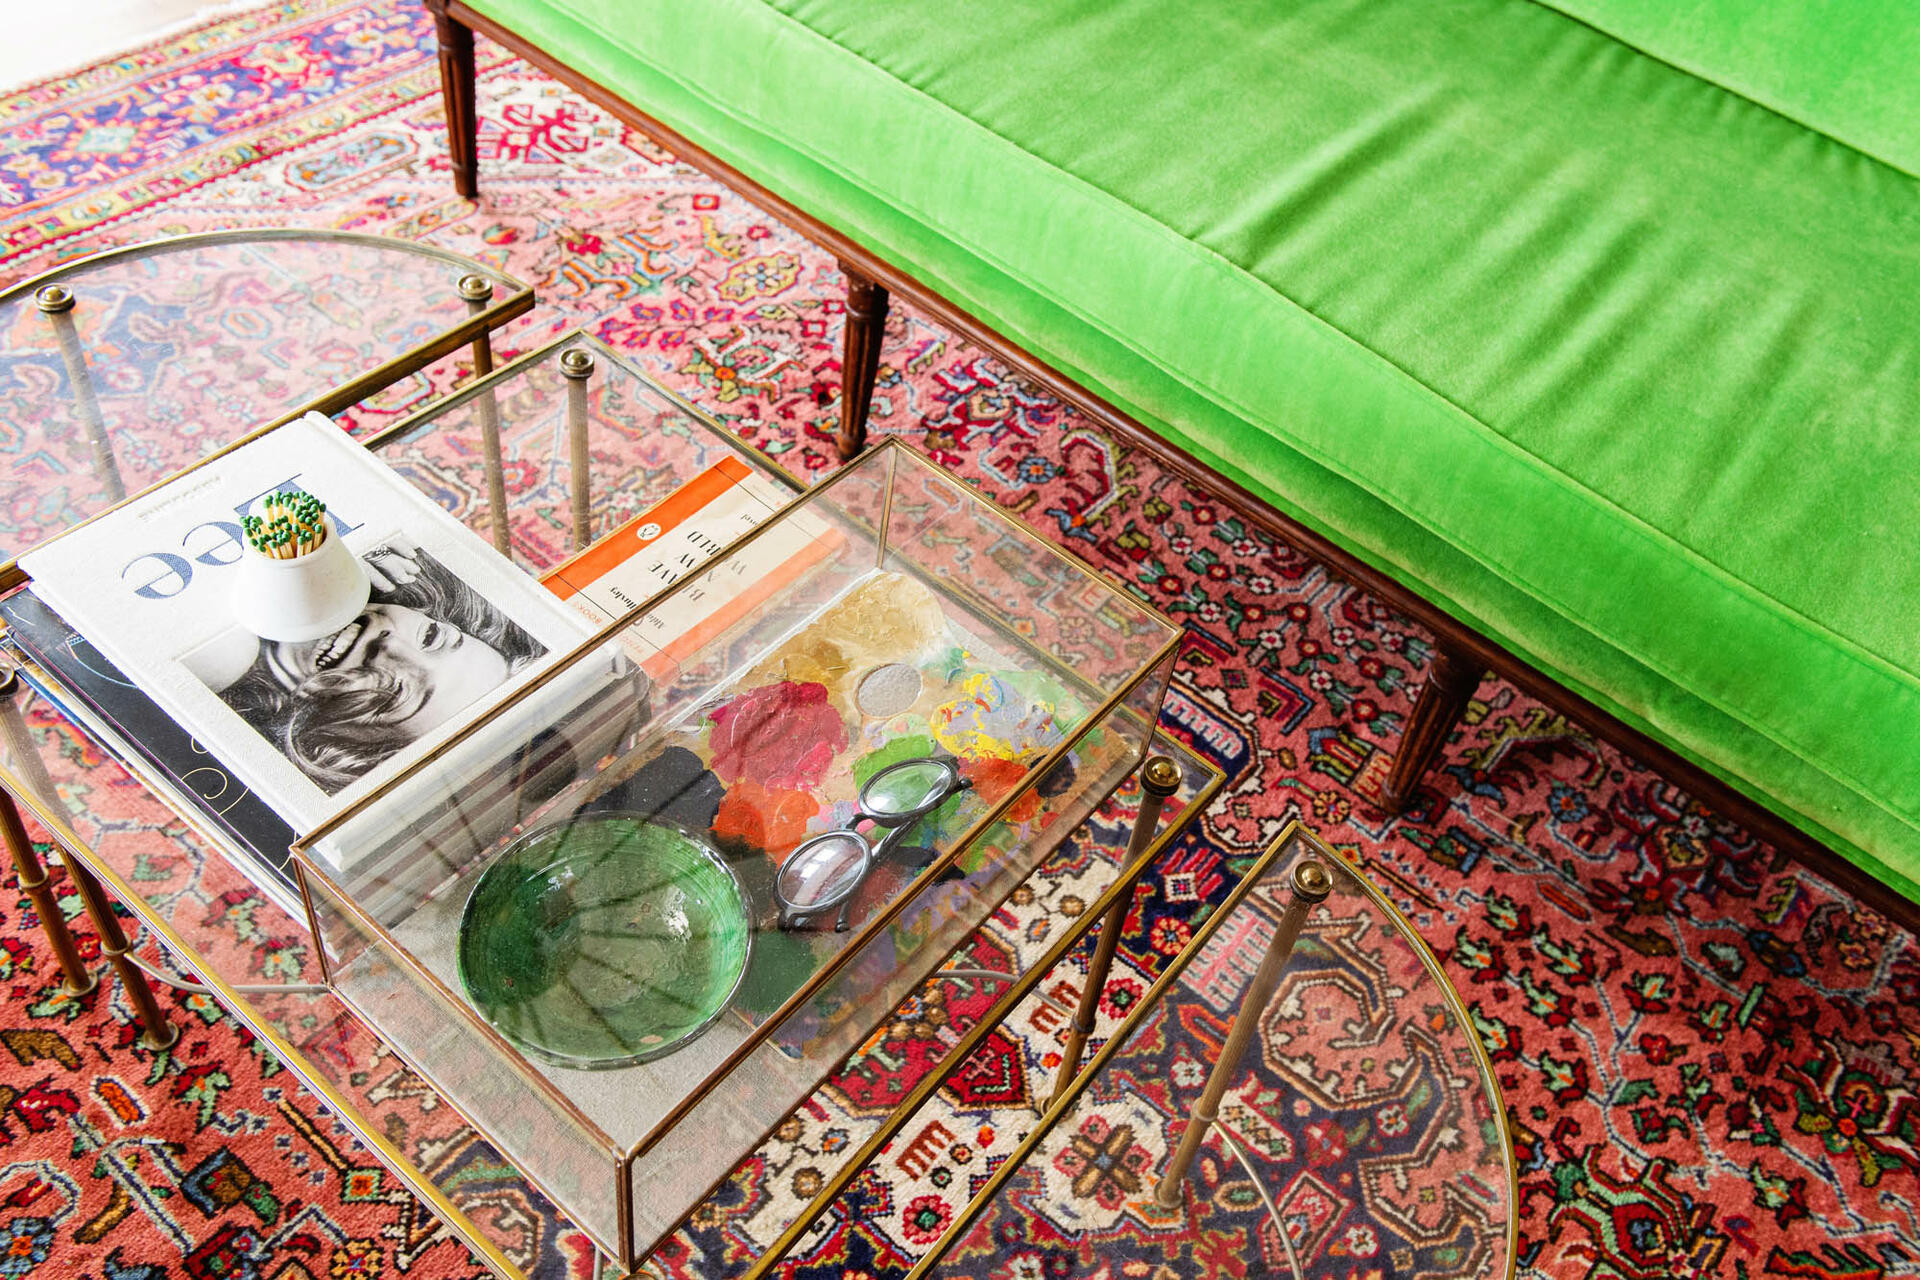 red carpet, glass table and green sofa couch